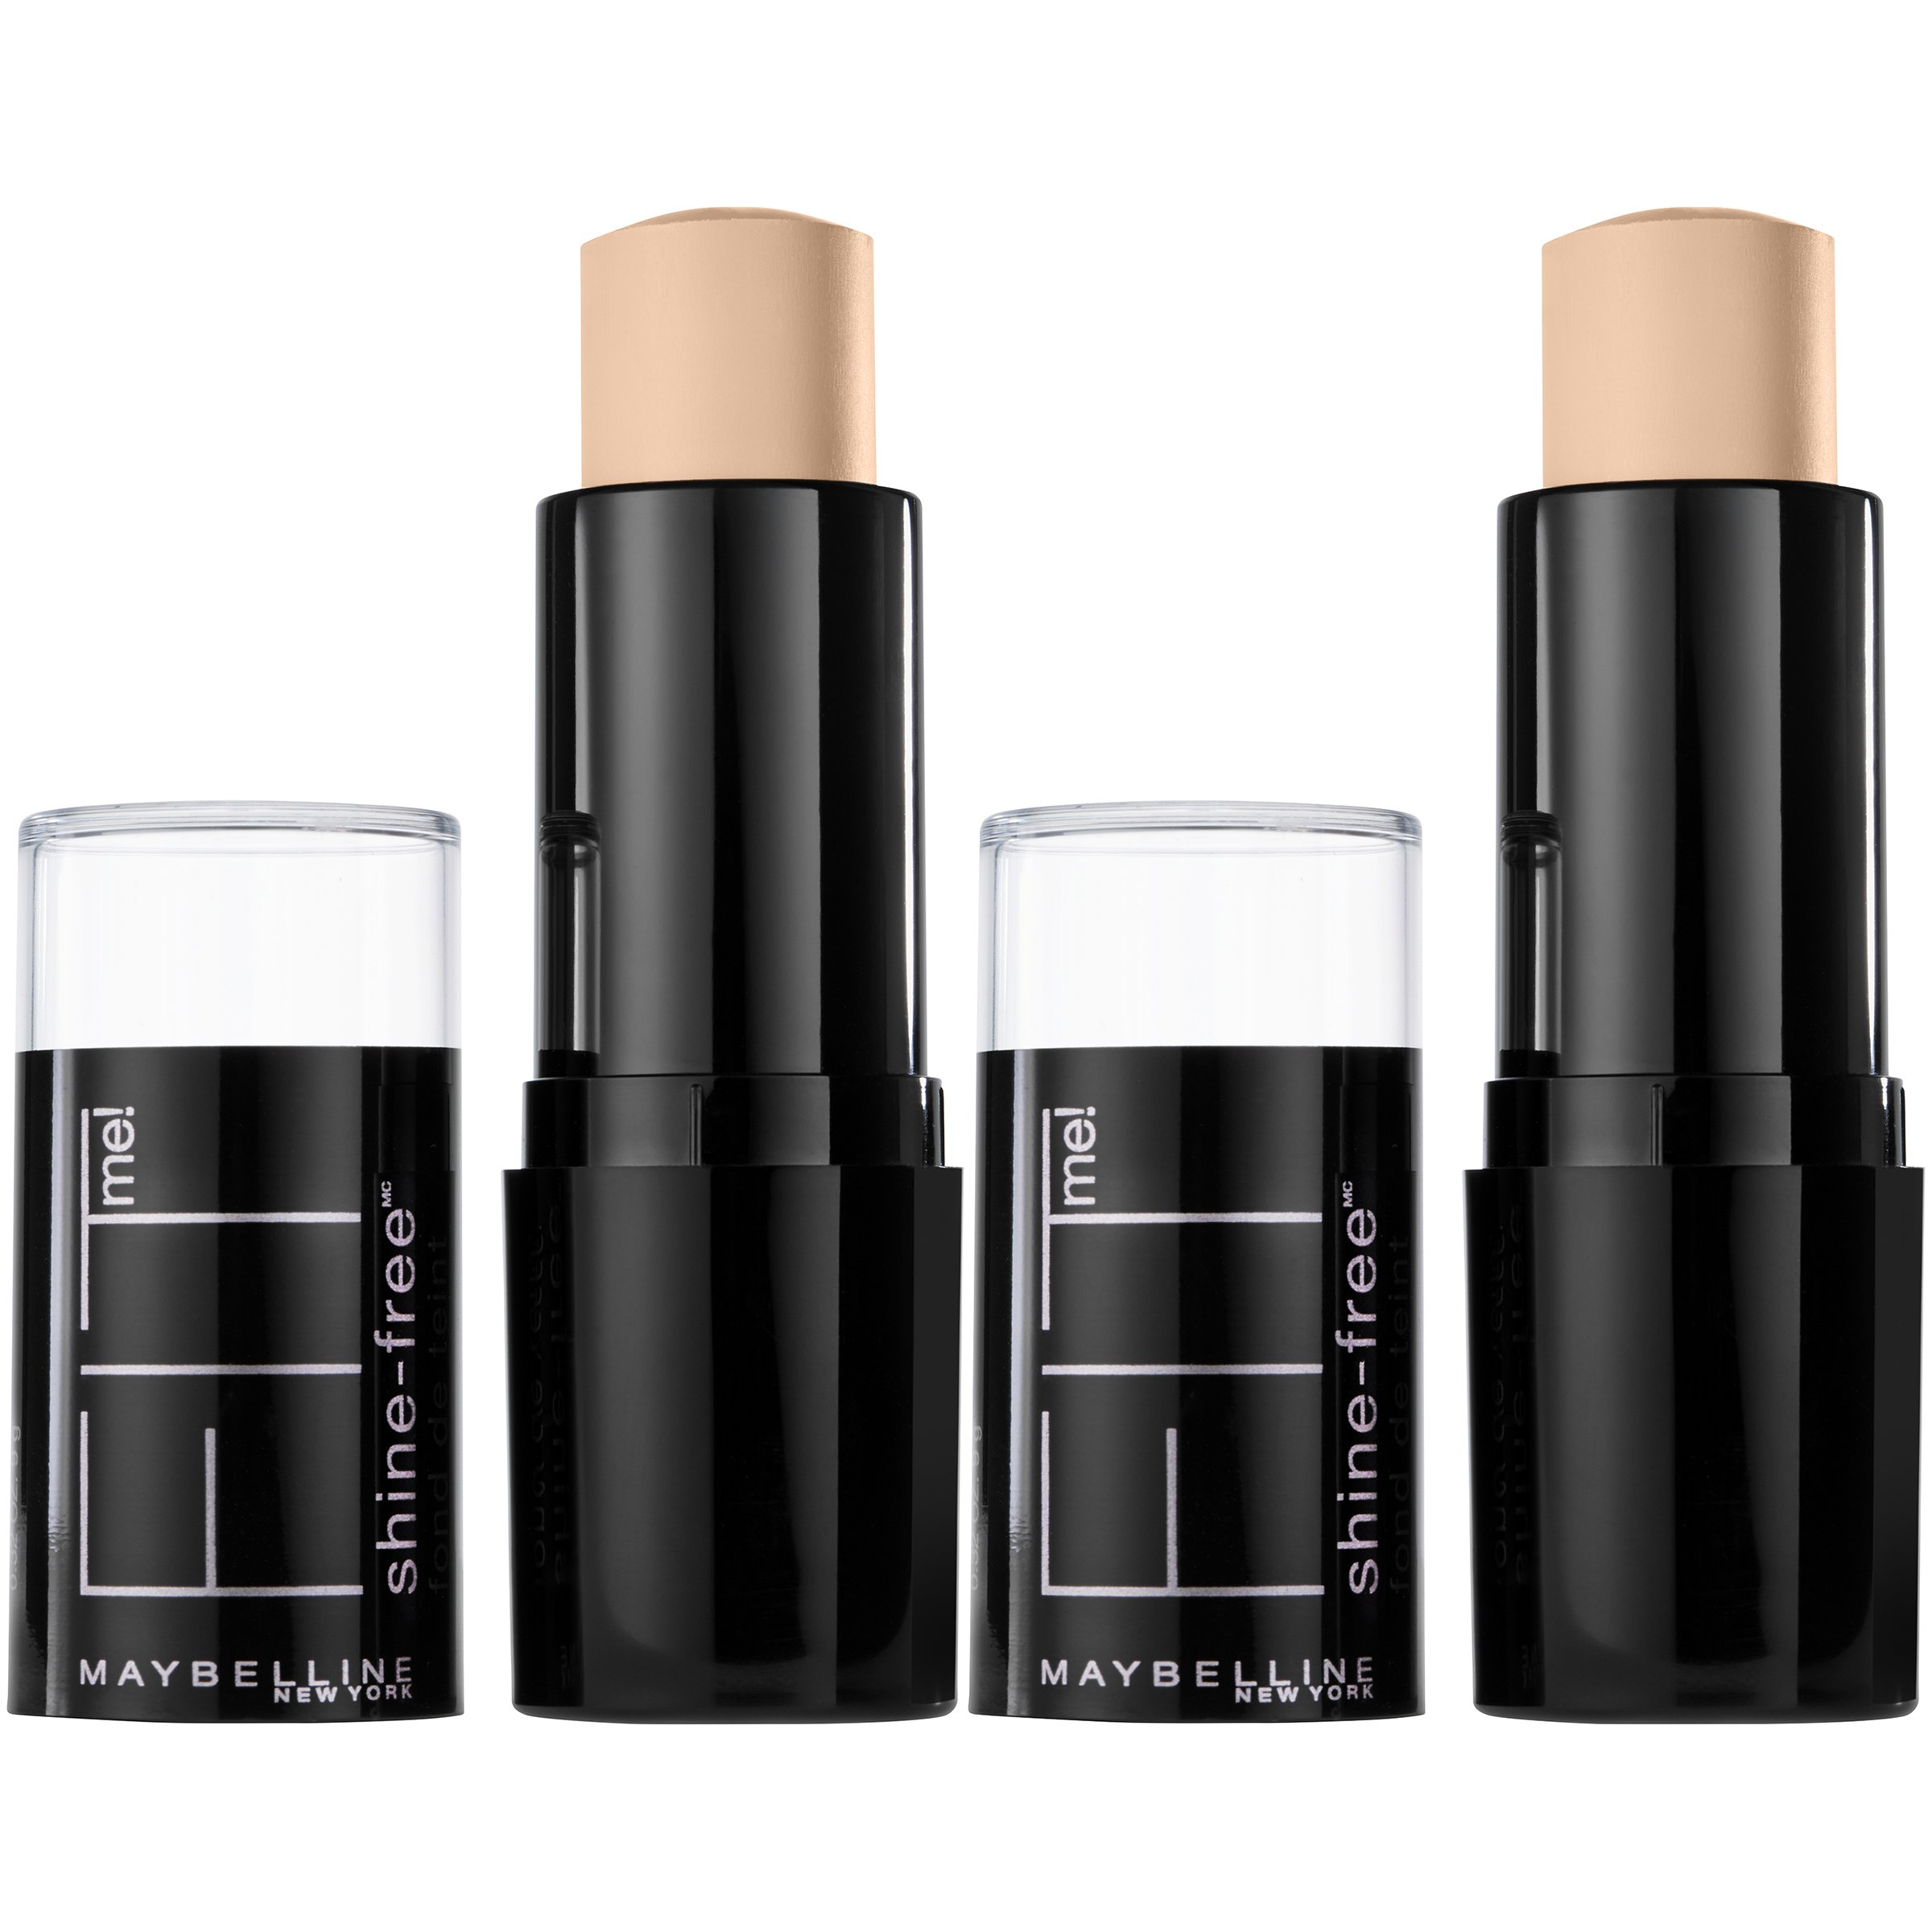 Maybelline New York Fit Me Shine-free + Balance Stick Foundation Makeup, Classic Ivory, 2 Count